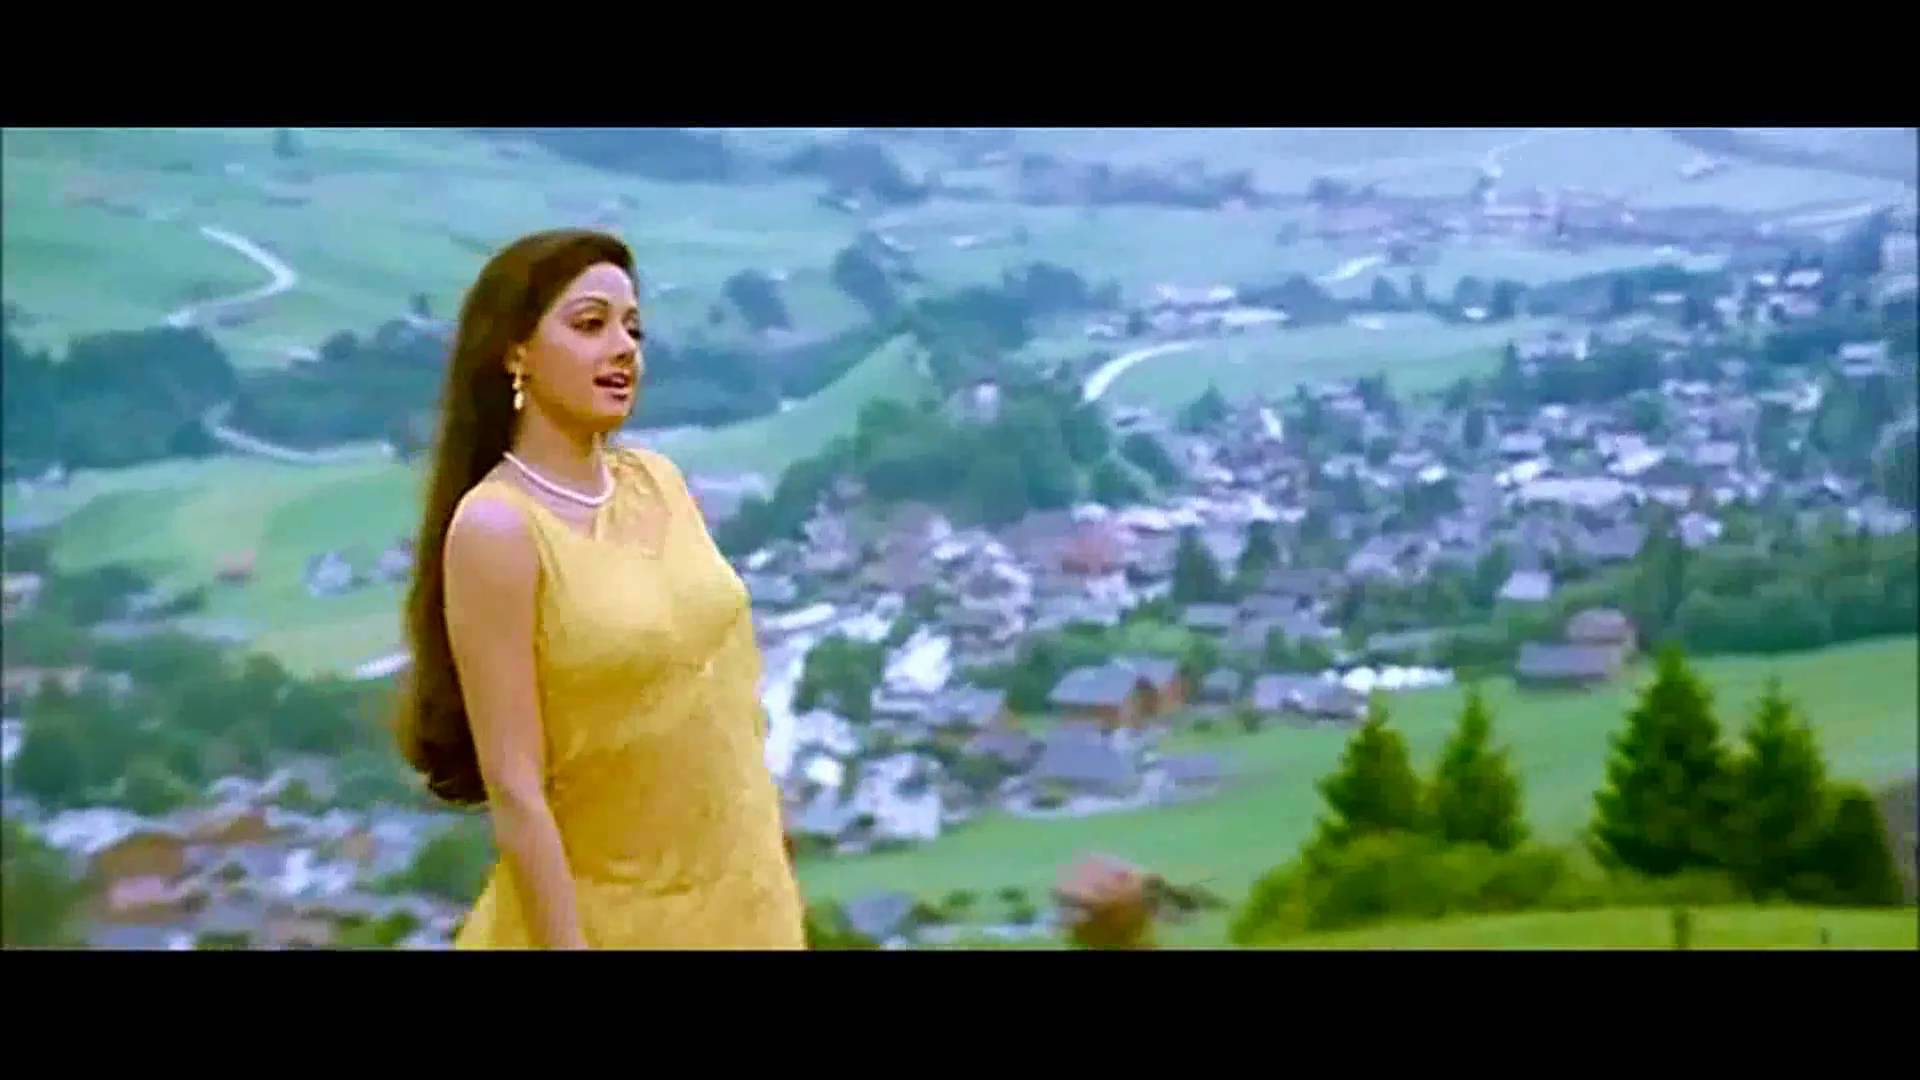 Tere mere hoton pe mp3 download free by naifisuco issuu.